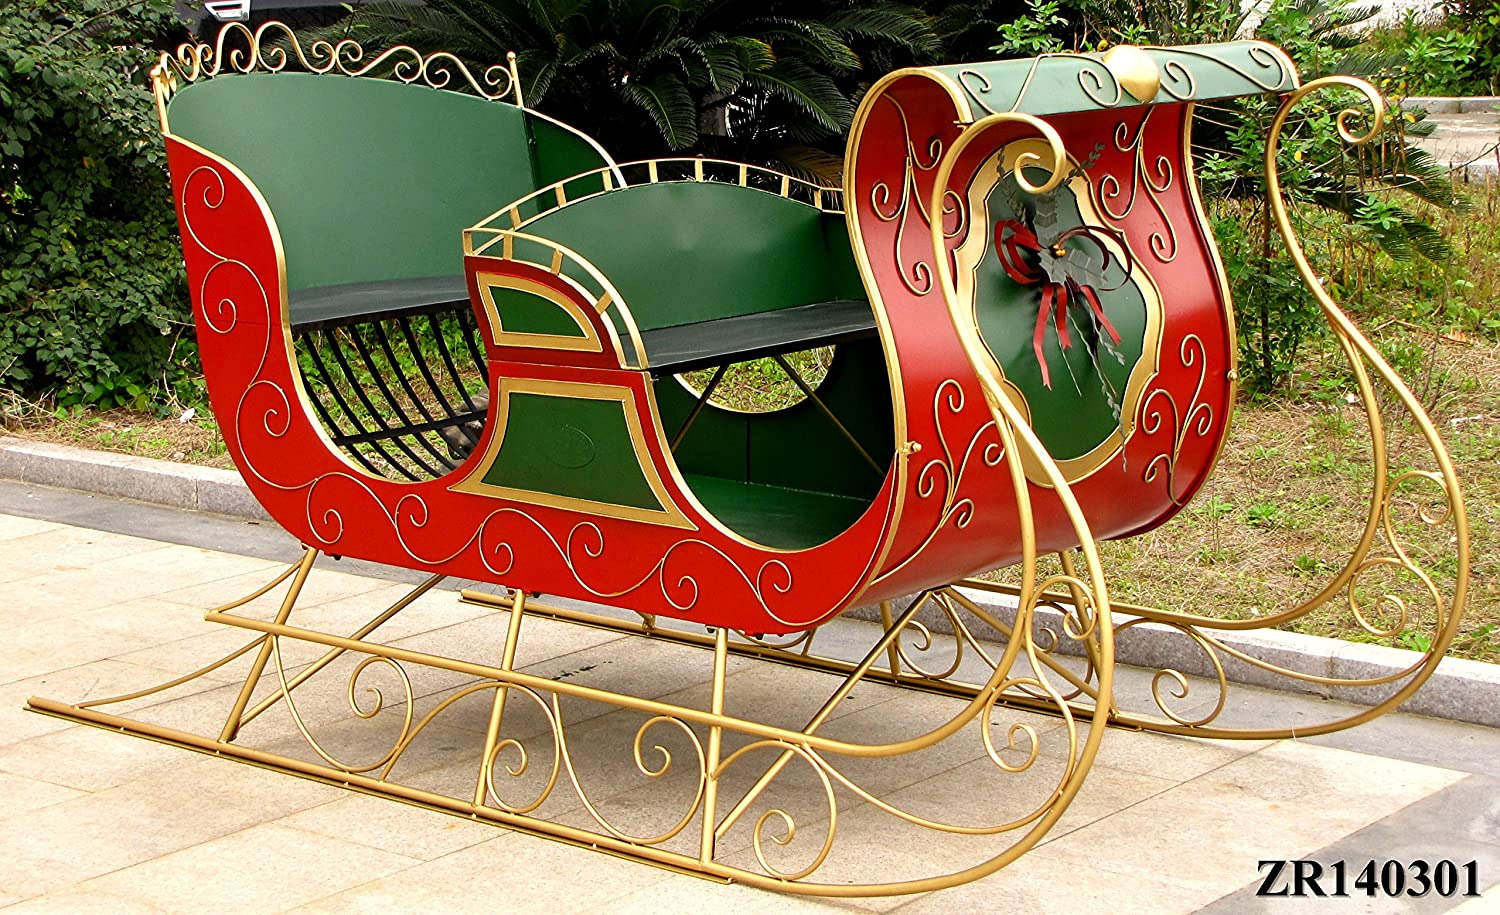 95 Long, One-of-a-kind Unique Christmas Sleigh